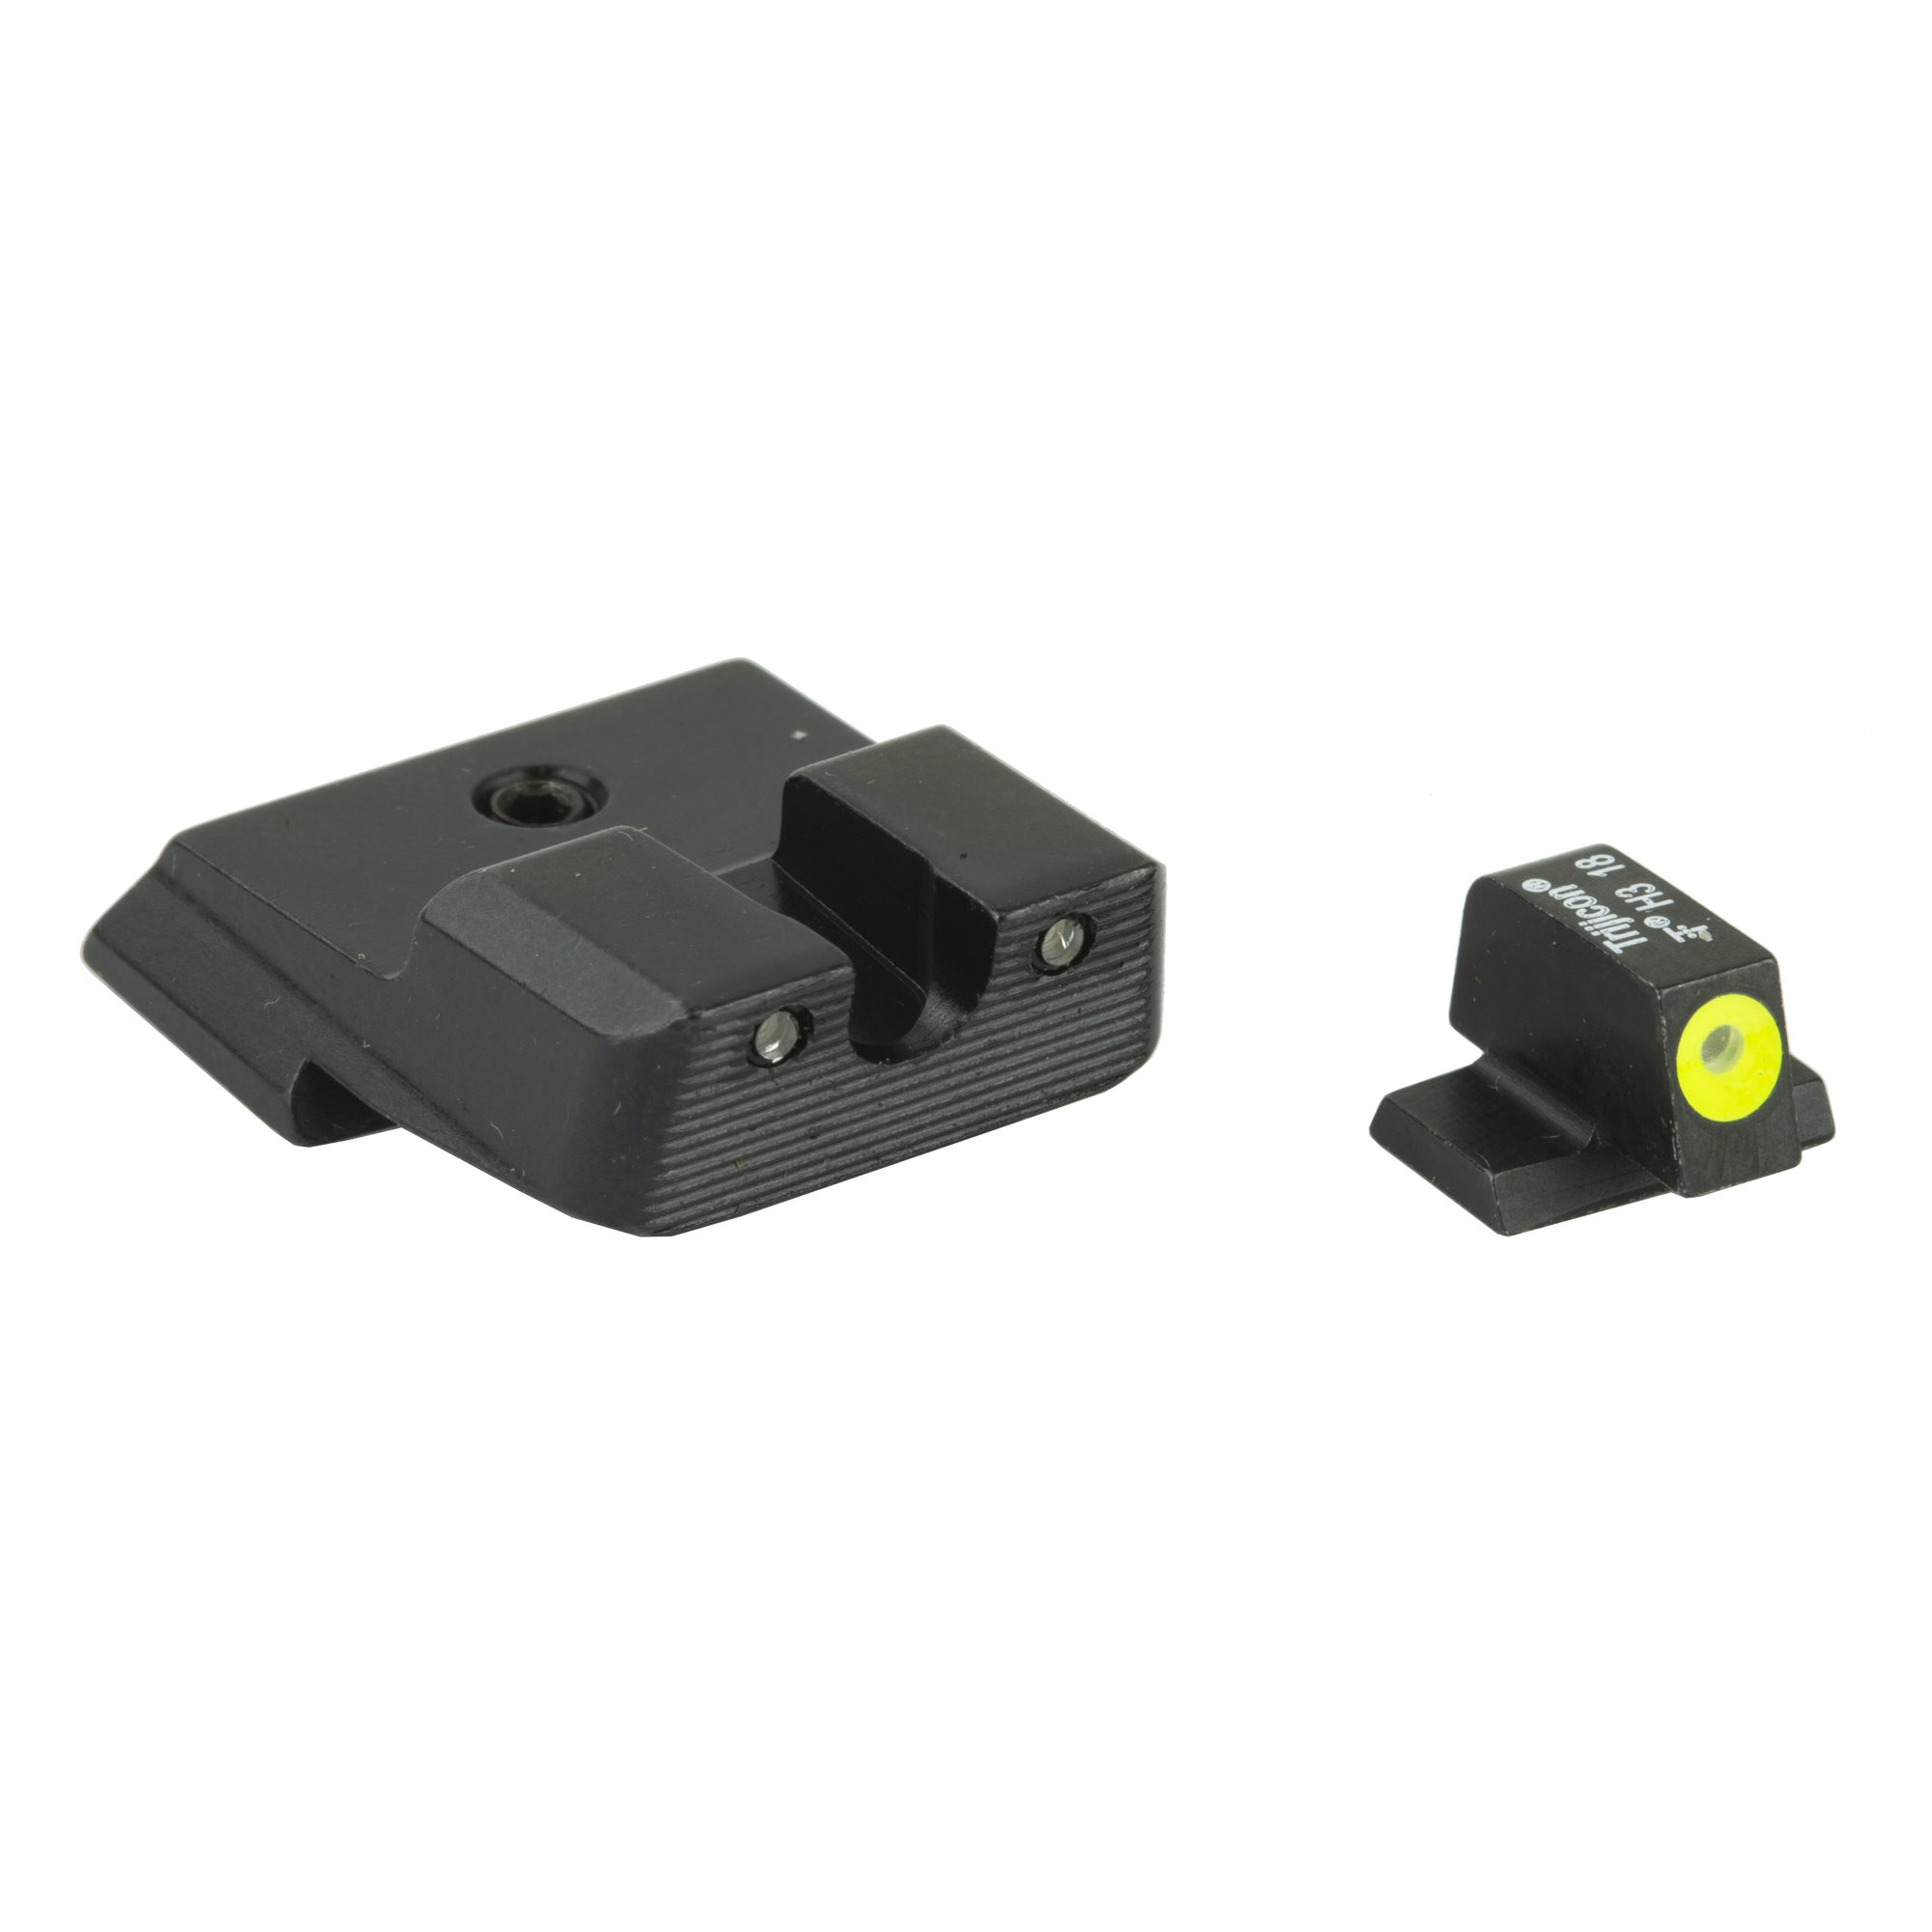 "S&W HD Night Sight Set - Yellow Front Outline: The HD Night Sights were specifically created to address the needs of tactical shooters. The three dot green tritium night sight set's front sight features a taller blade and an aiming point ringed in photoluminescent paint while the rear sight is outlined in black and features a wider U-shaped notch. This unique configuration increases visibility and quickens front sight acquisition-even in transitional lighting. Additionally"" the front surface of the rear sight is steeply hooked to assist in emergency one-handed slide operation. Green tritium lamps are warranted for 12 years from date of manufacture."